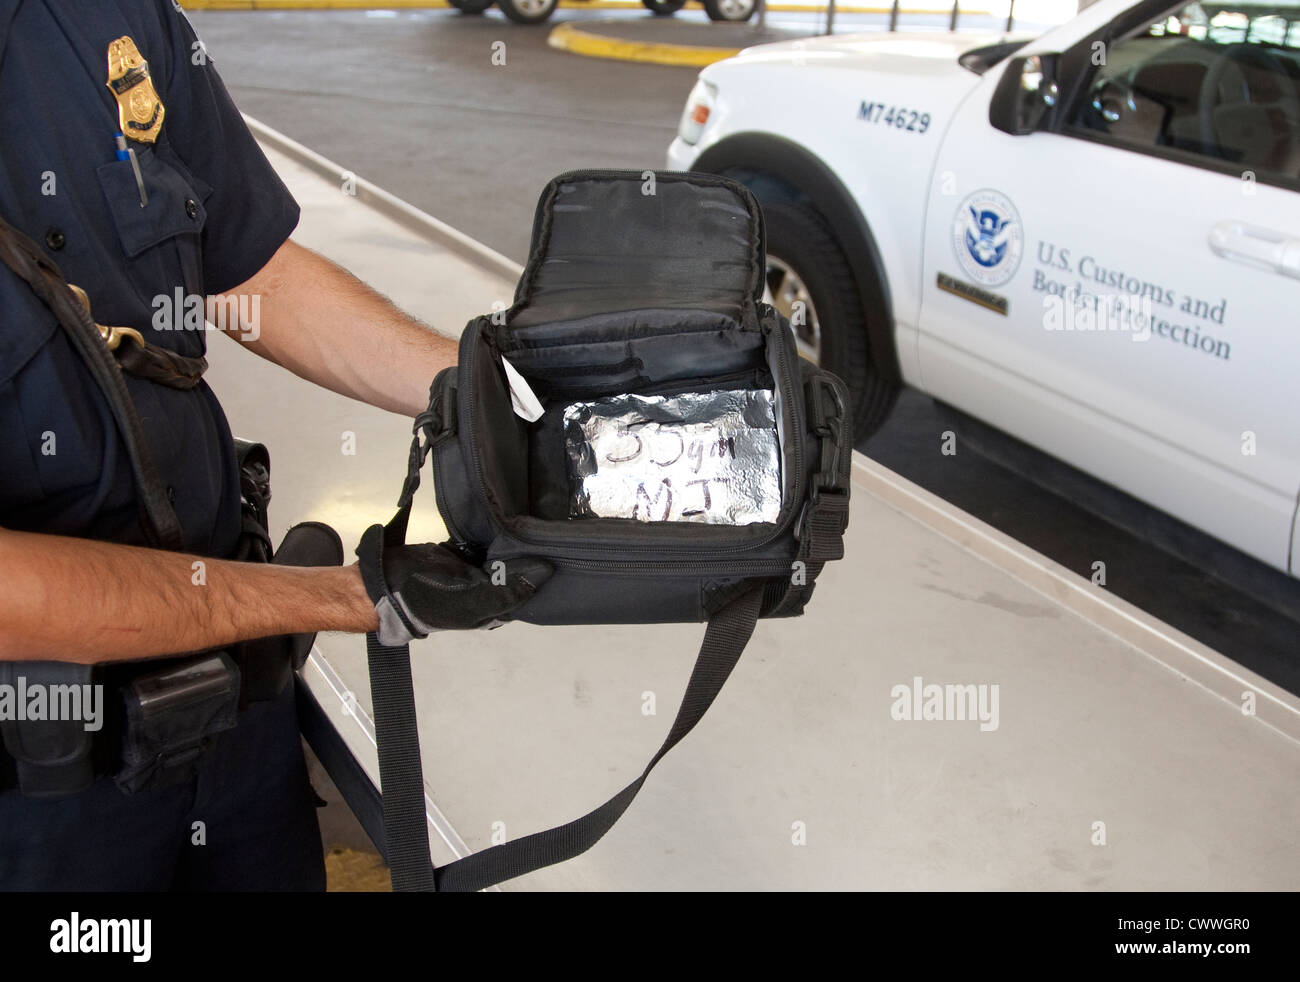 U.S Customs and Border Protection Élections ouvre sac contenant un paquet de marijuana, de former des chiens Photo Stock